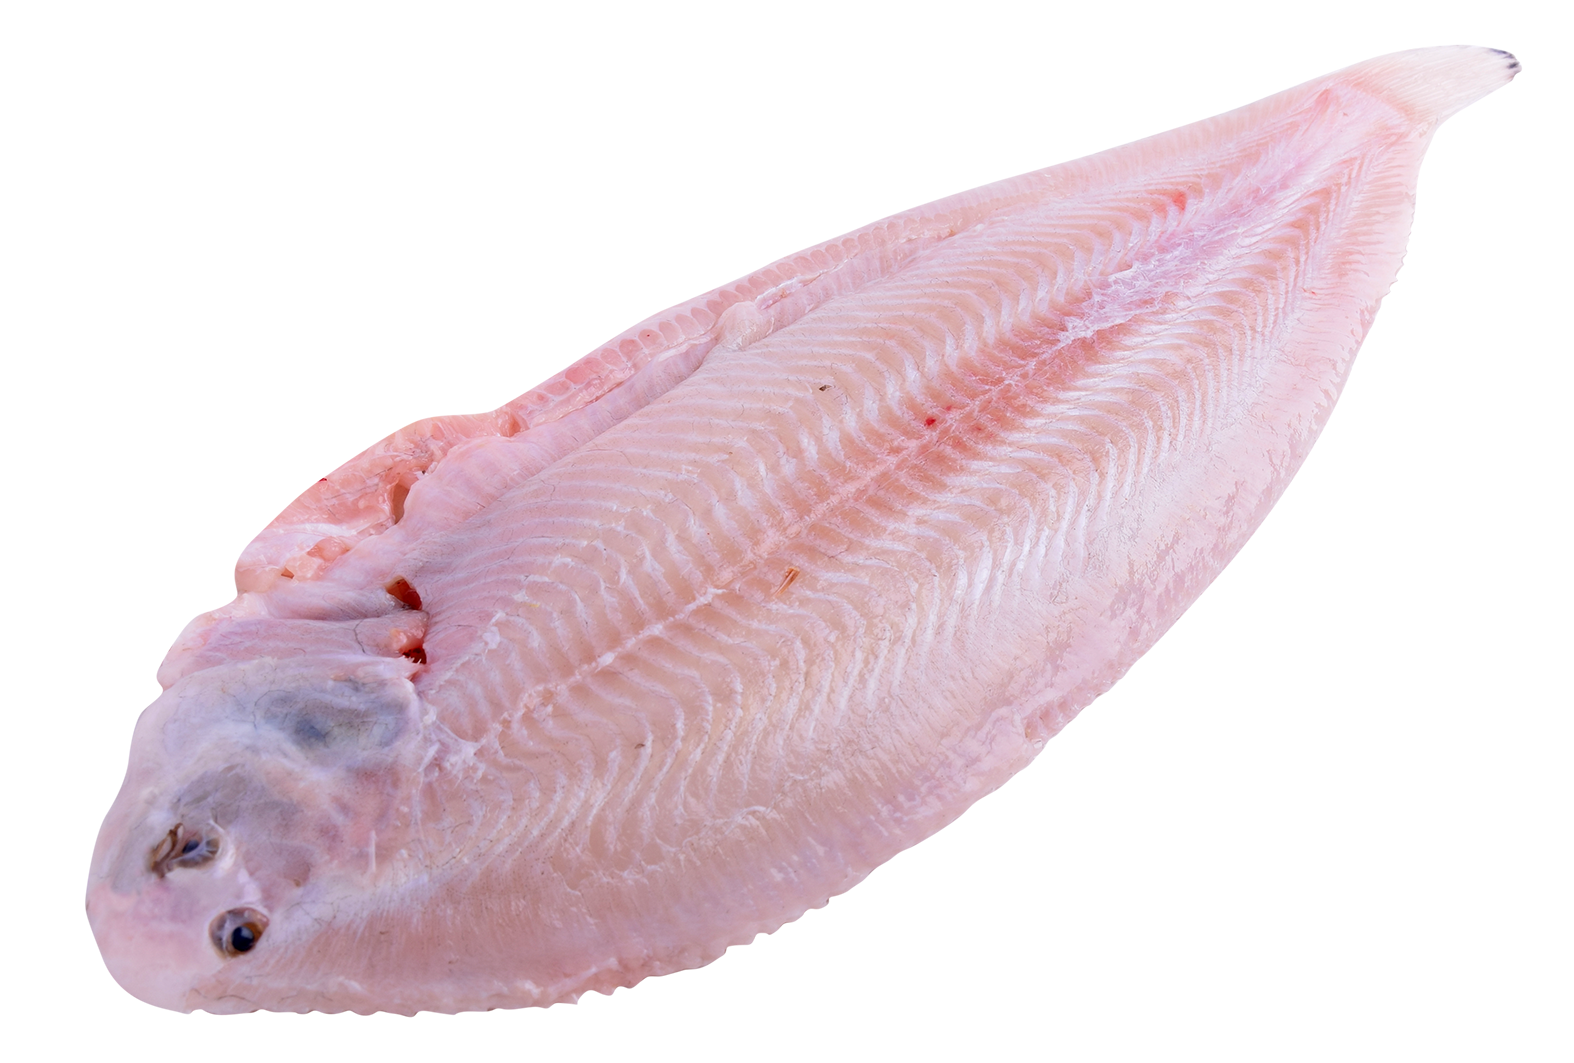 Productafbeelding DOVER SOLE SKINLESS SIZE 650-700GR